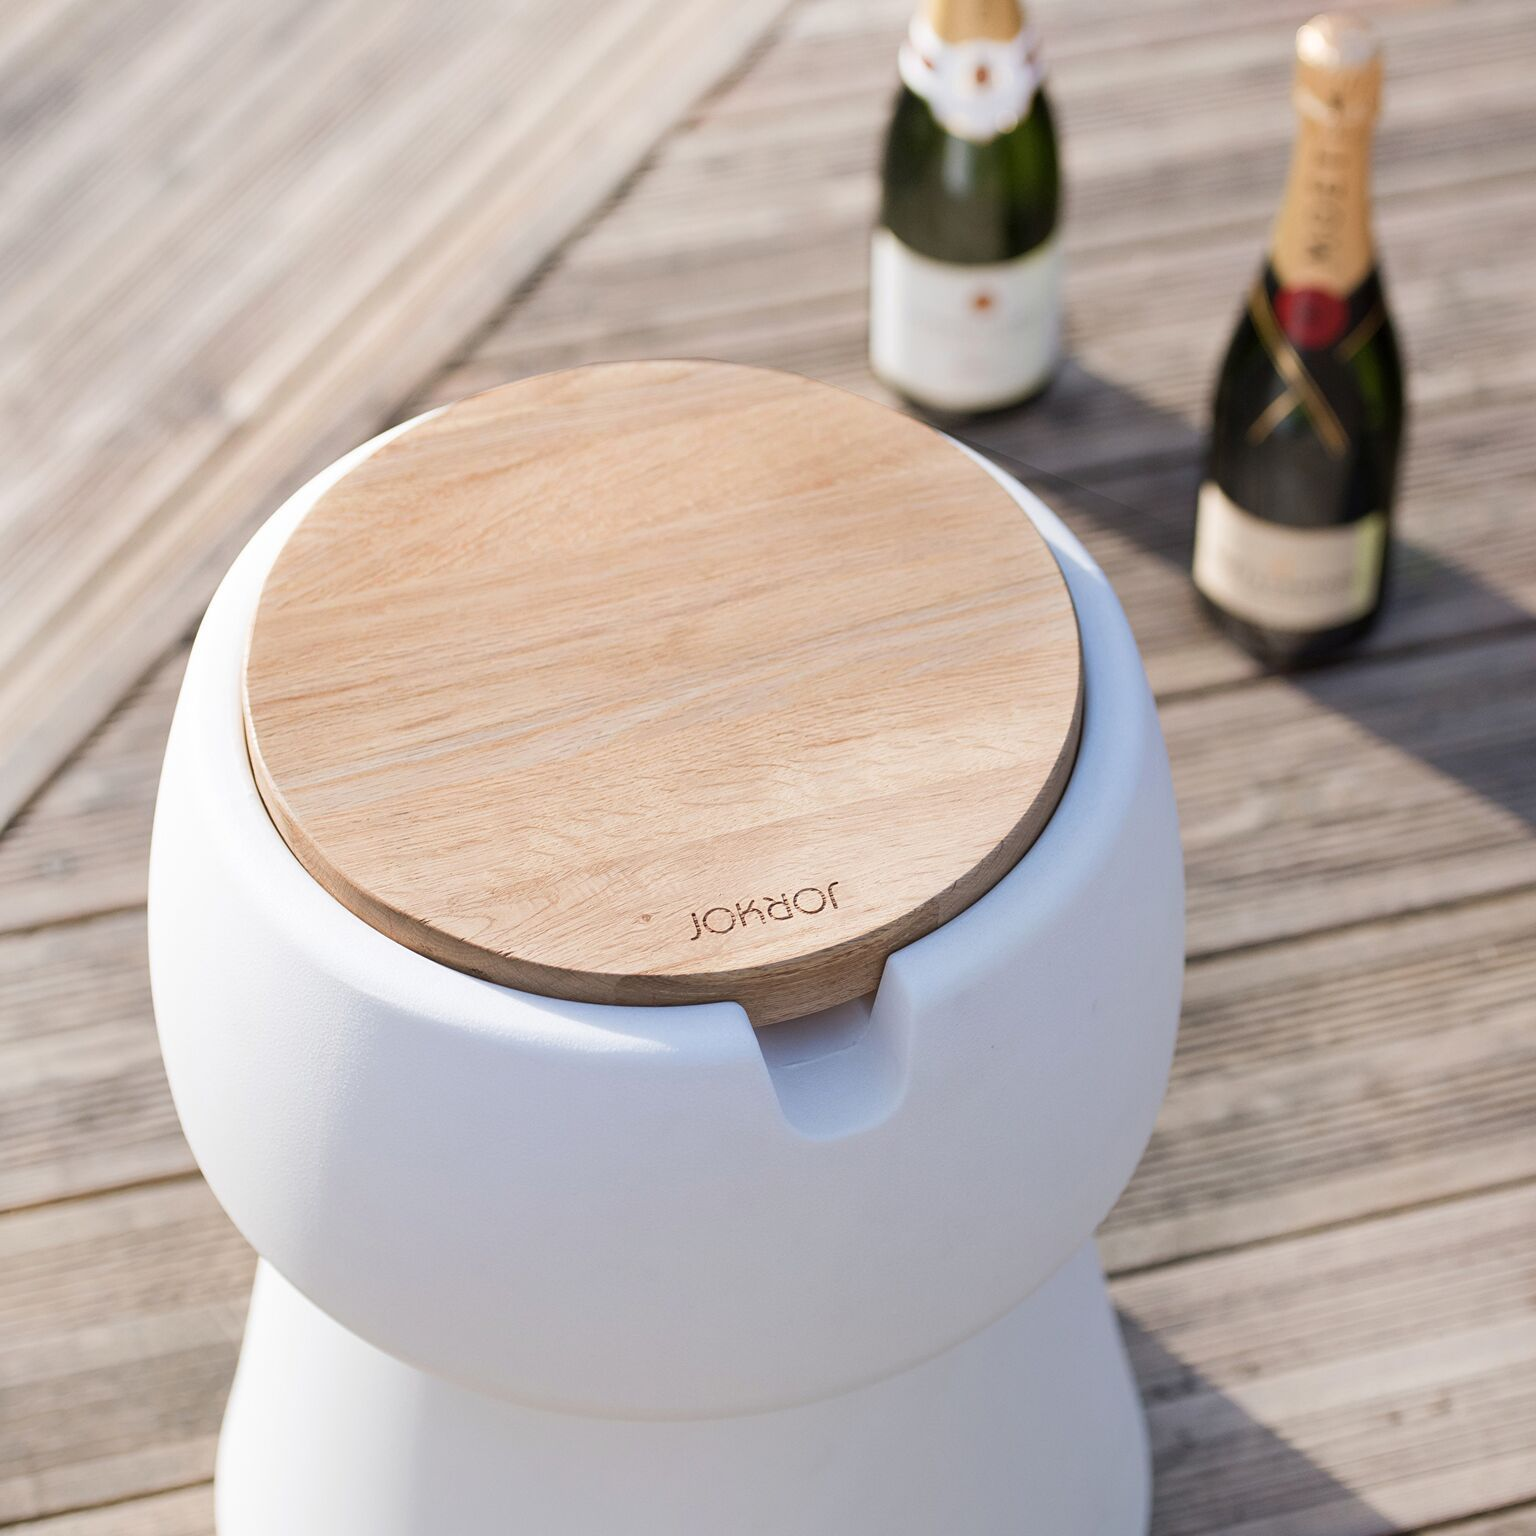 The JOKJOR Champ is a stool that also can be used as a cooler